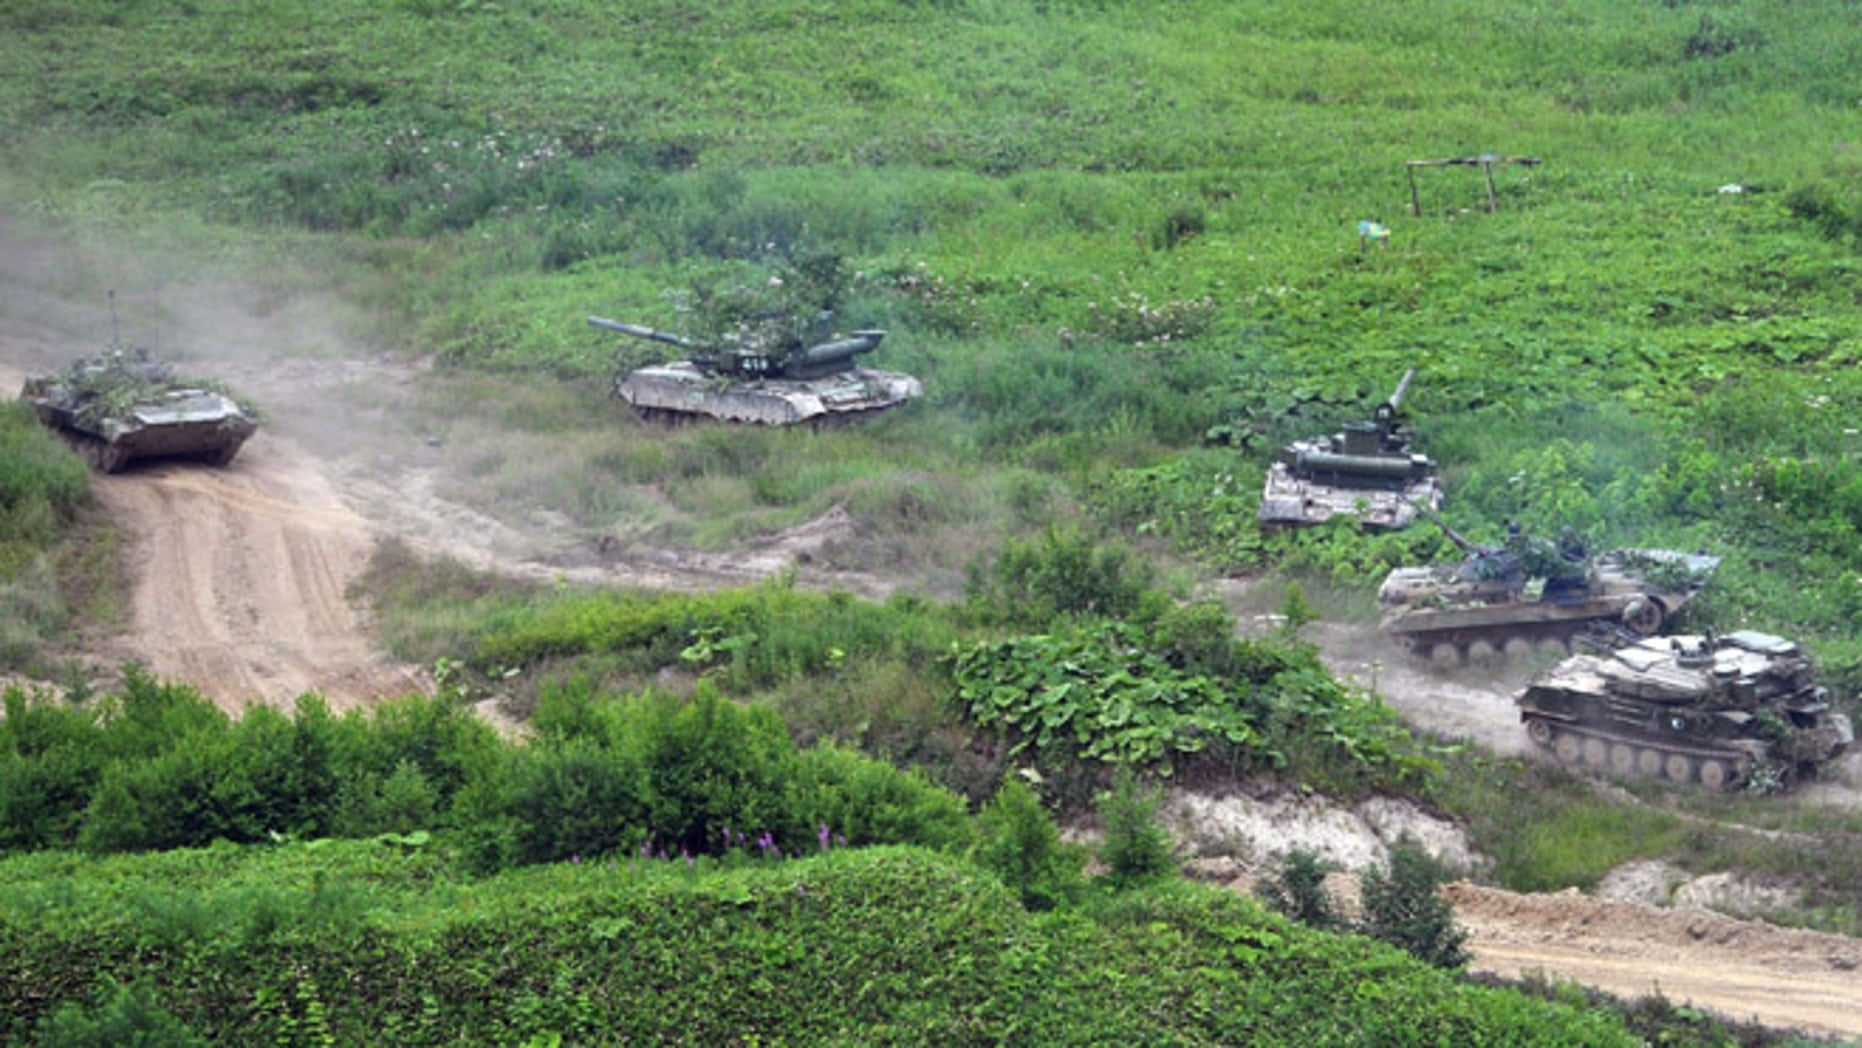 July 16, 2013: Russian Army tanks move at the Sakhalin Island during military exercises. The maneuvers in Siberia and the far eastern region involved 160,000 troops and about 5,000 tanks -- a massive show of force unprecedented since the Soviet times.